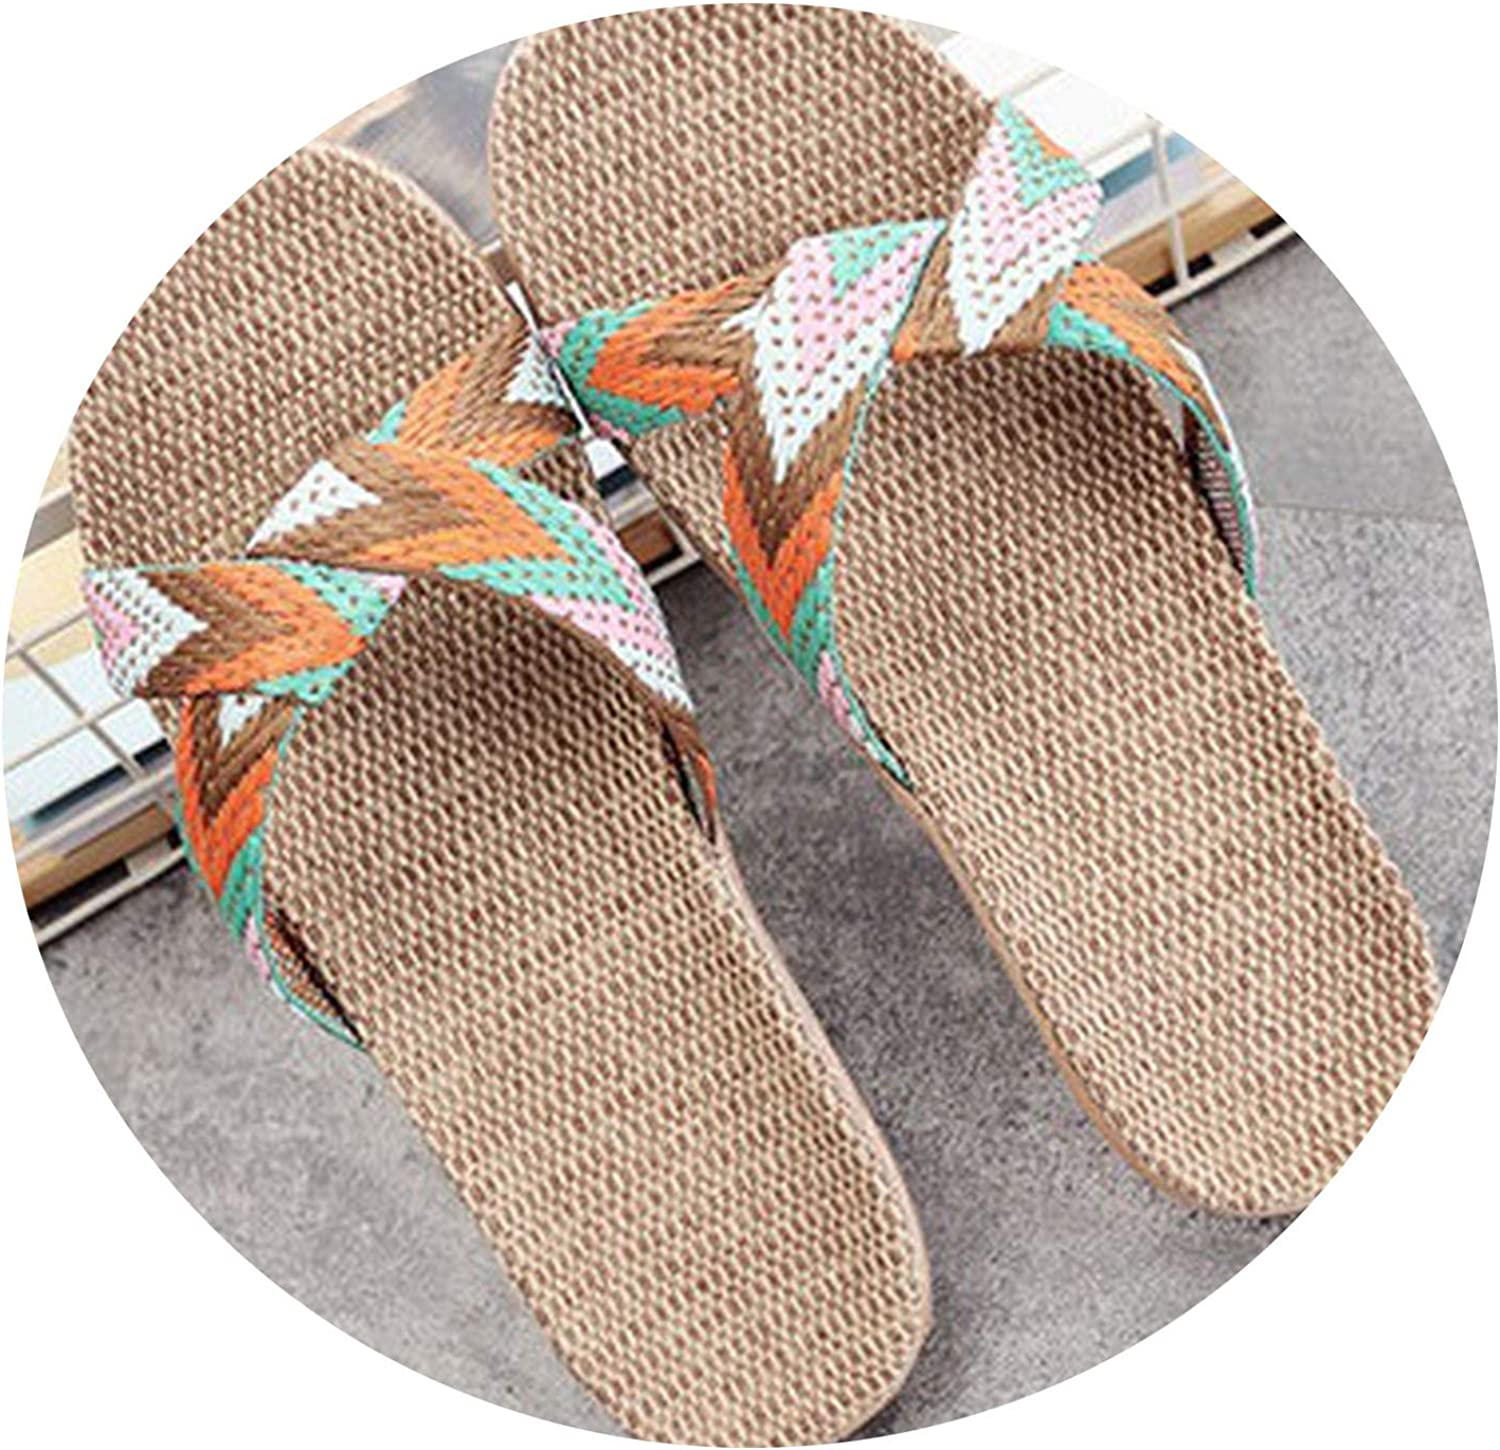 dream-boy-kkk Summer Home Slippers Women 35-45 Large Size Slapping Beach Flip Flops Non-Slip Unisex Family Slippers